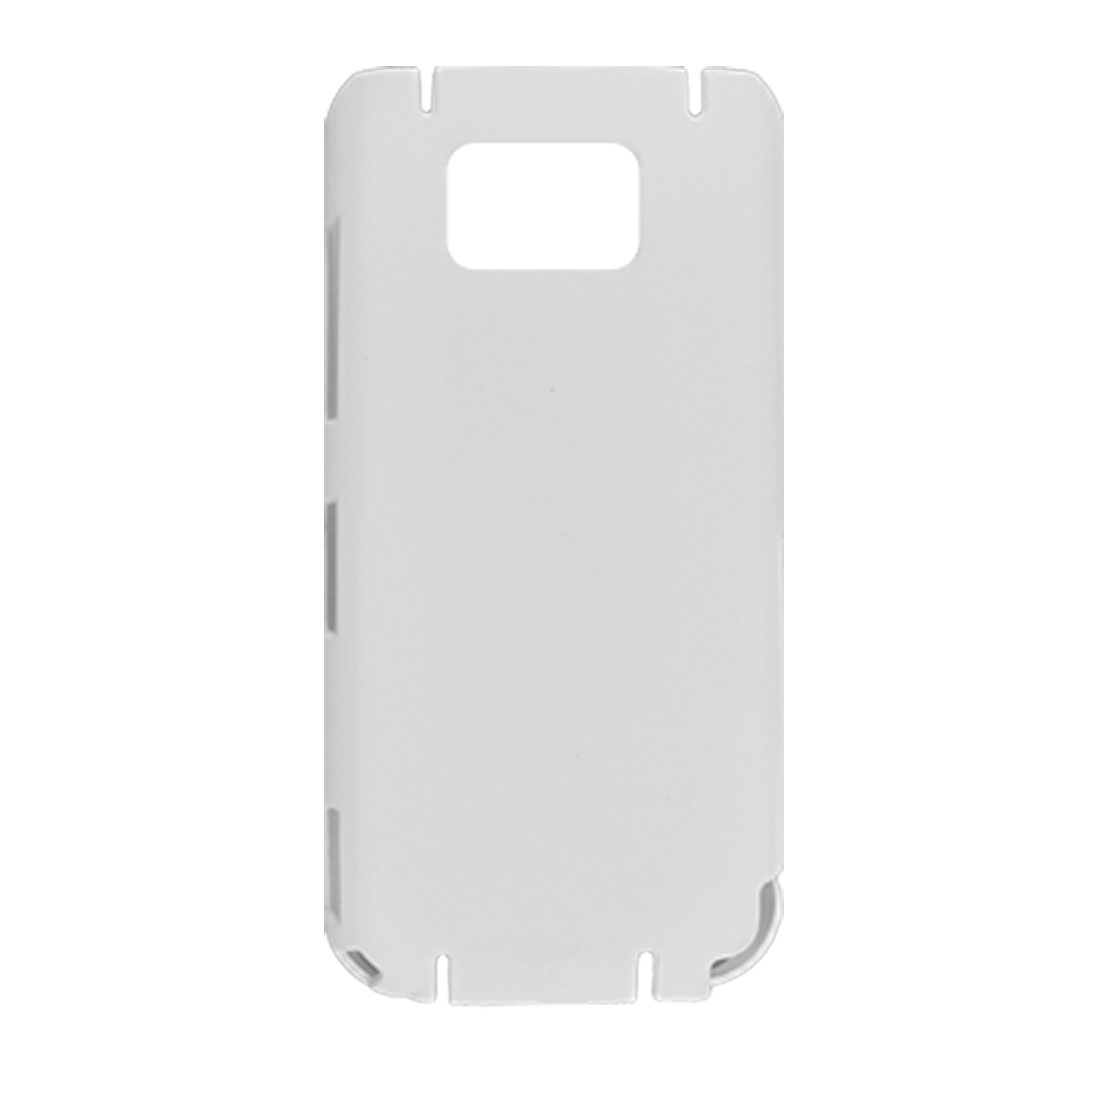 Rubberized Hard Plastic Shell Case for Nokia 5530 White